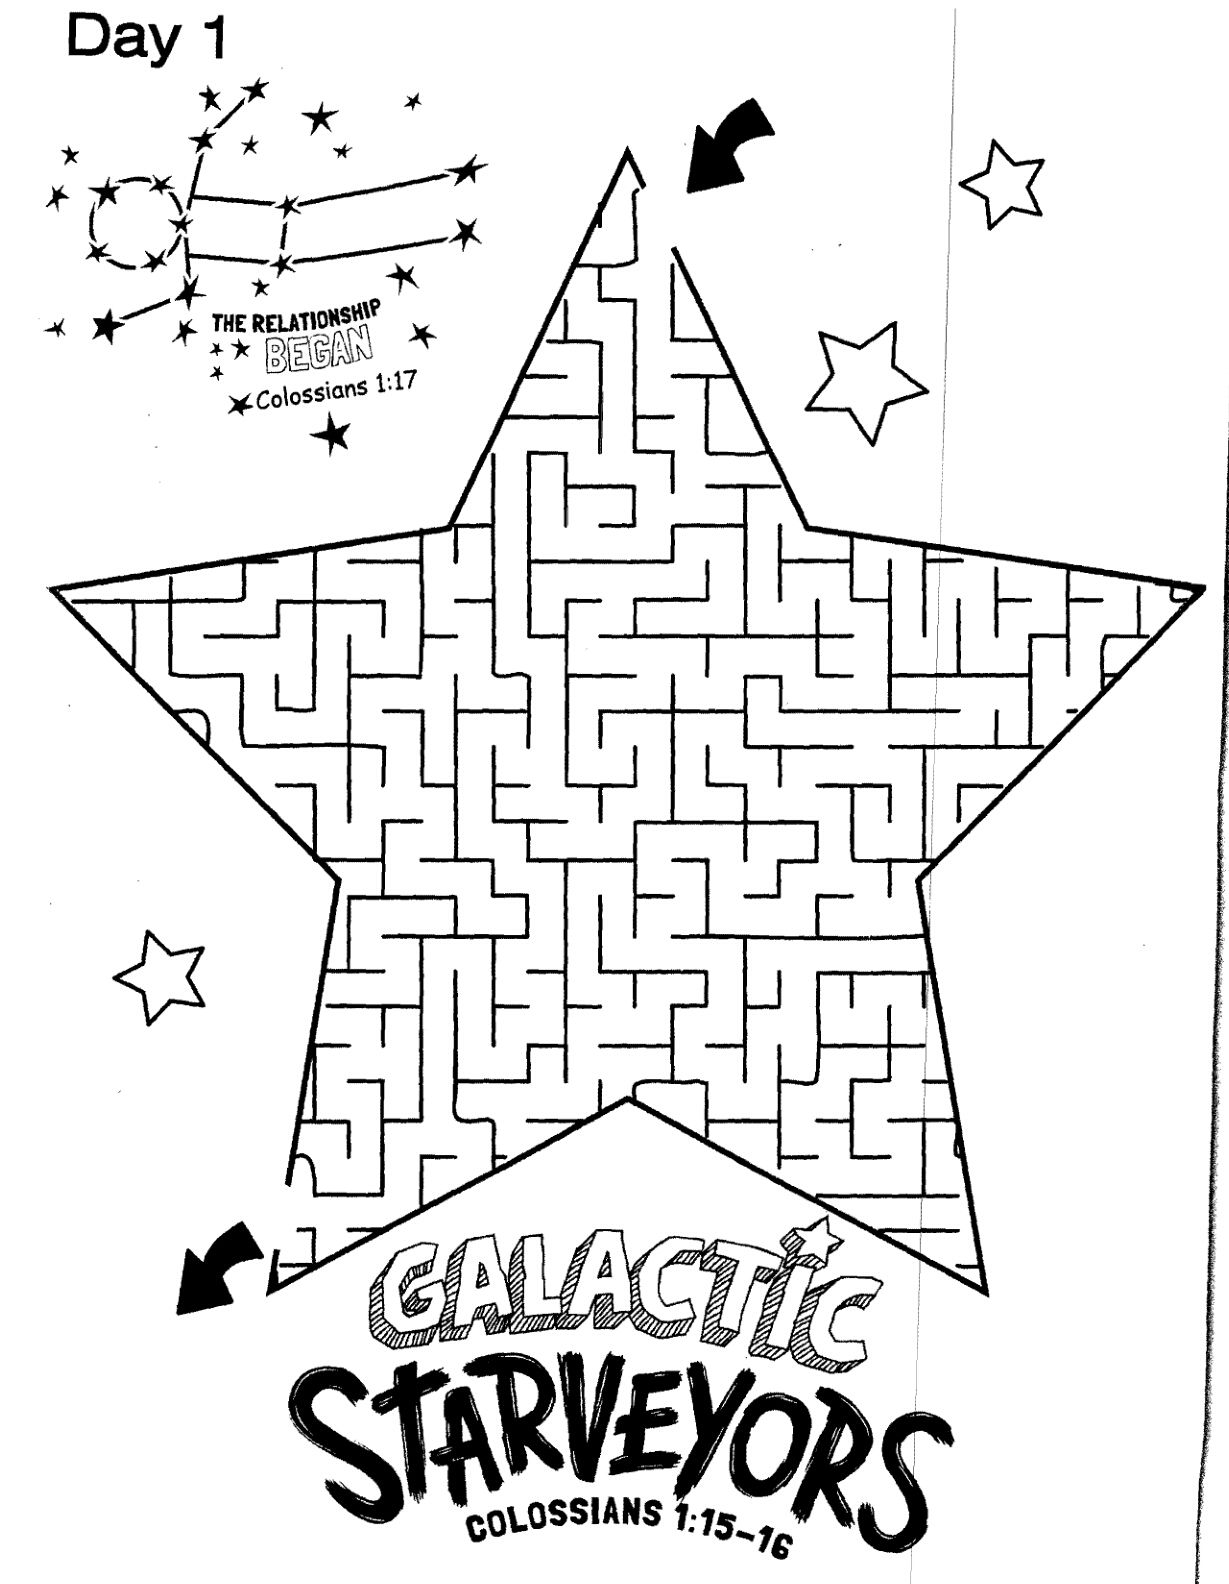 Galactic Starveyors Coloring Sheet Vbs Day 1